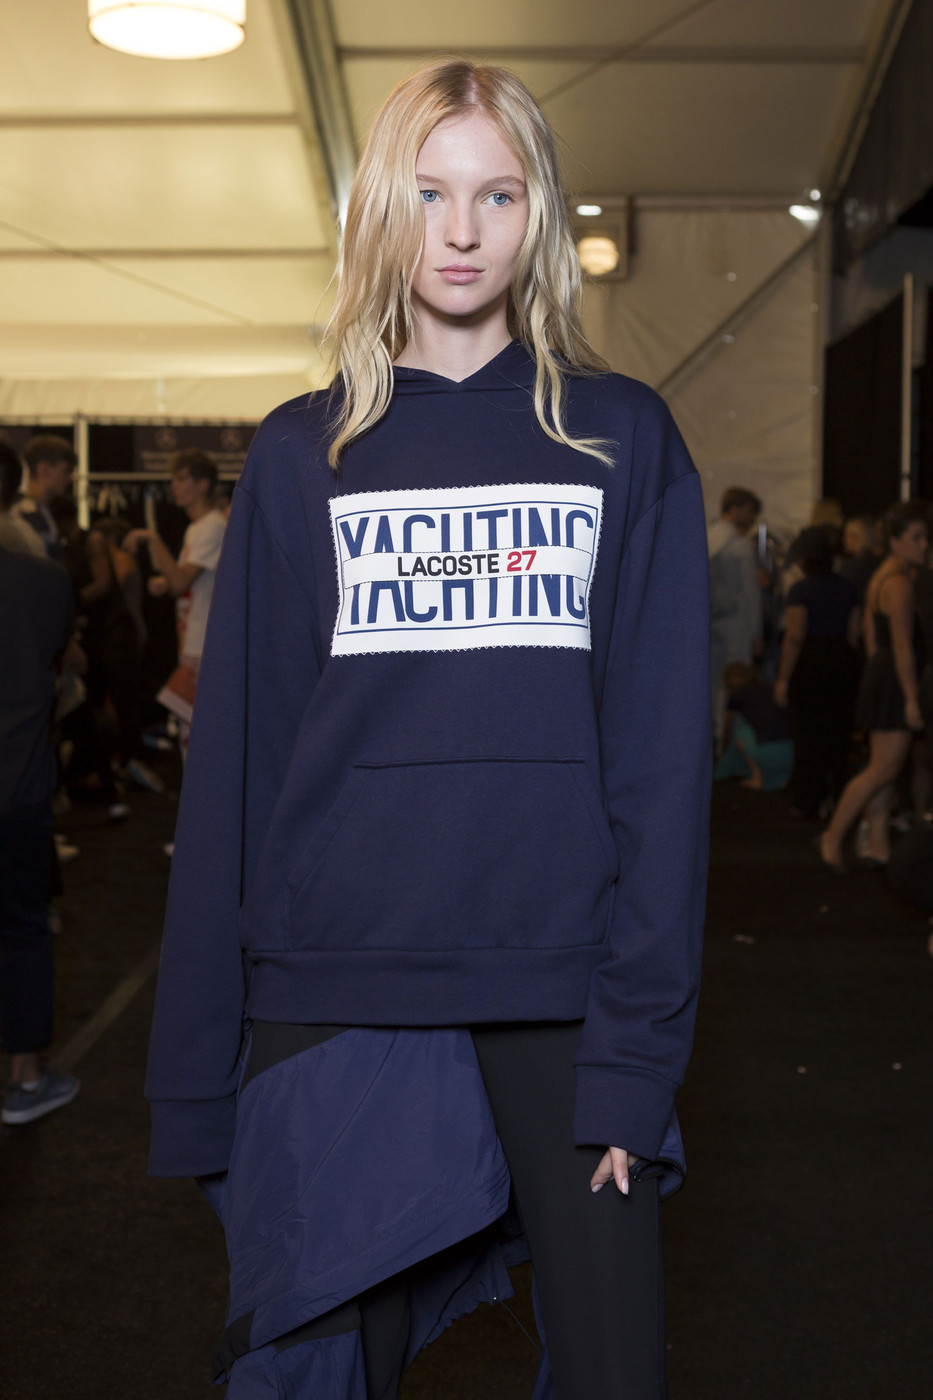 Lacoste+Spring+2015+Backstage+9sZheDGYZqHx.jpg